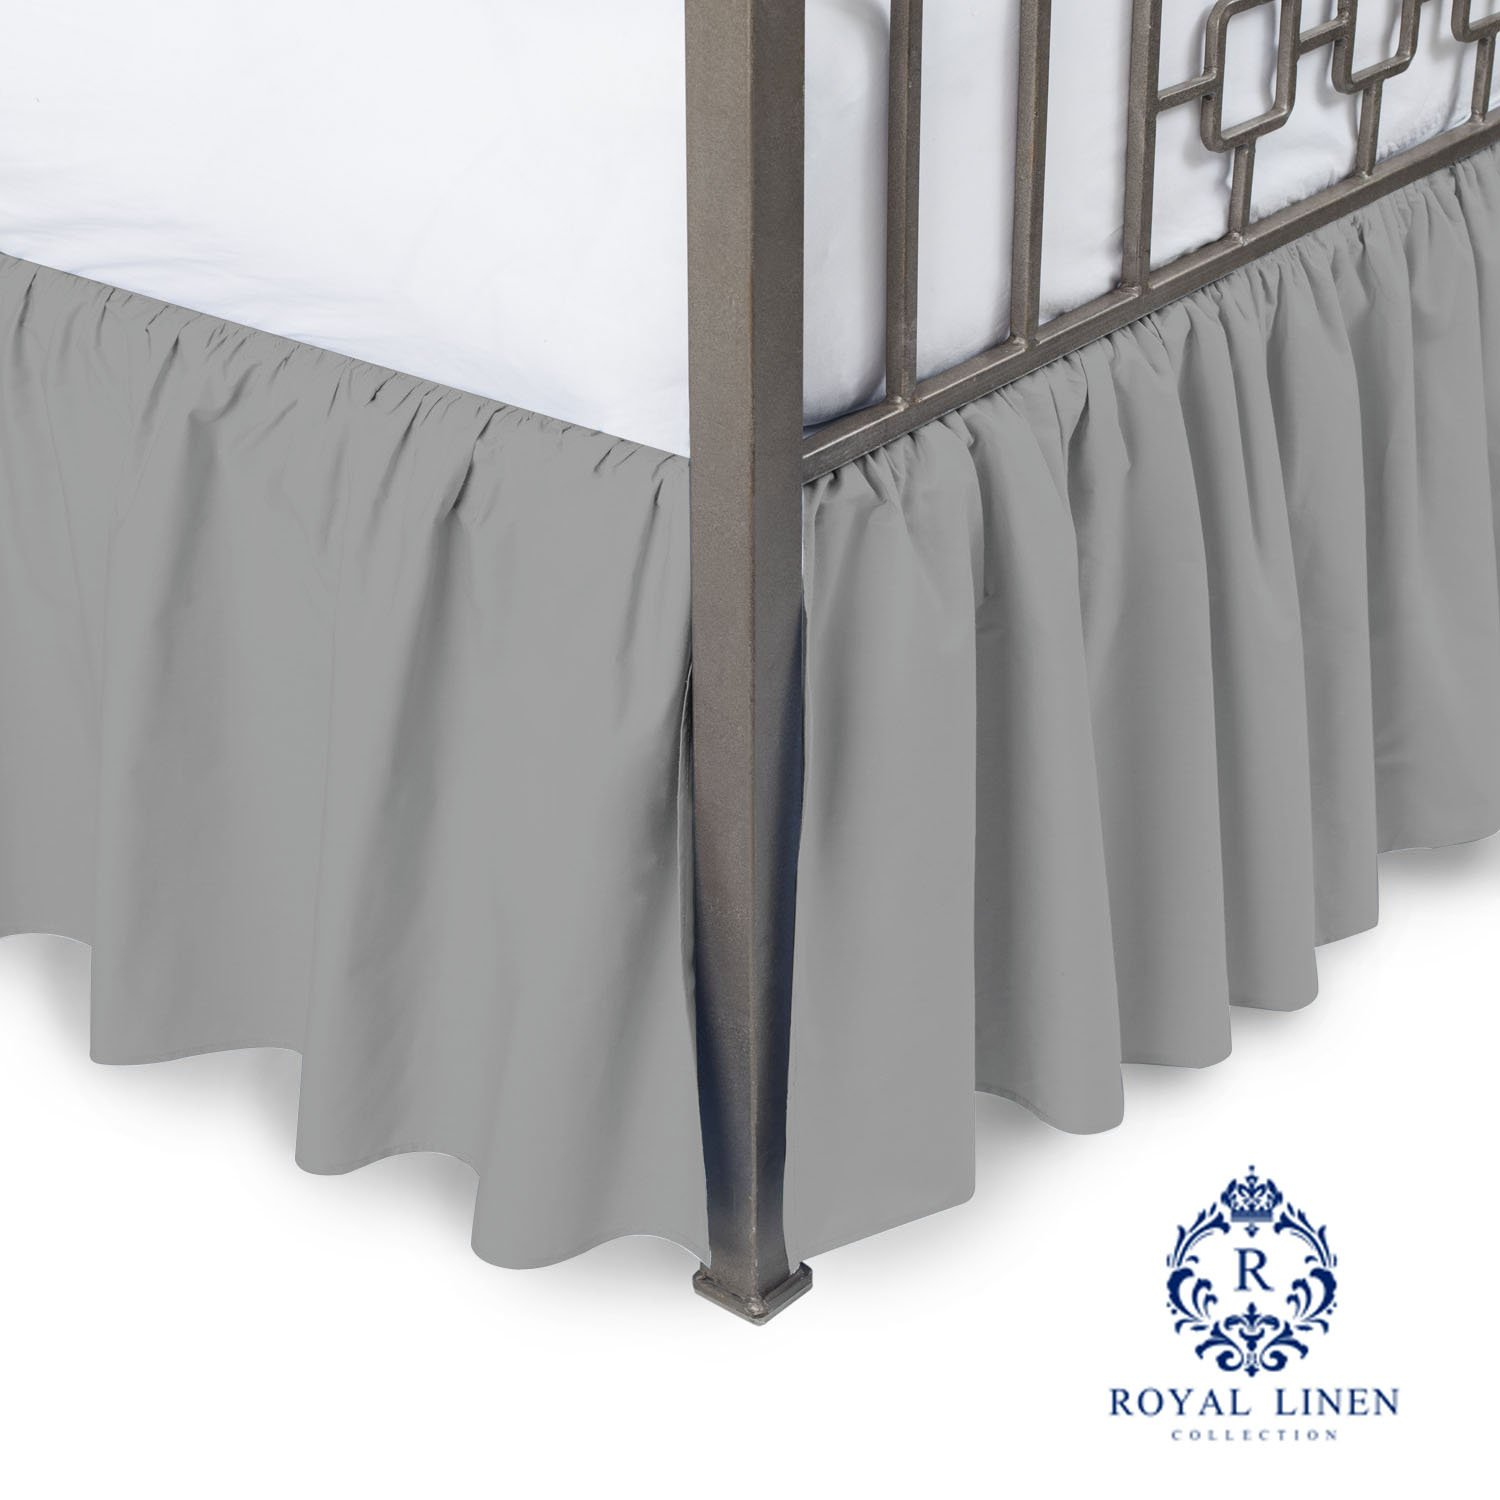 Royal Linen Collection Hotel Quality 800TC Pure Cotton Dust Ruffle Bed Skirt 12'' Drop length 100% Natural Cotton King Size Silver Grey Solid